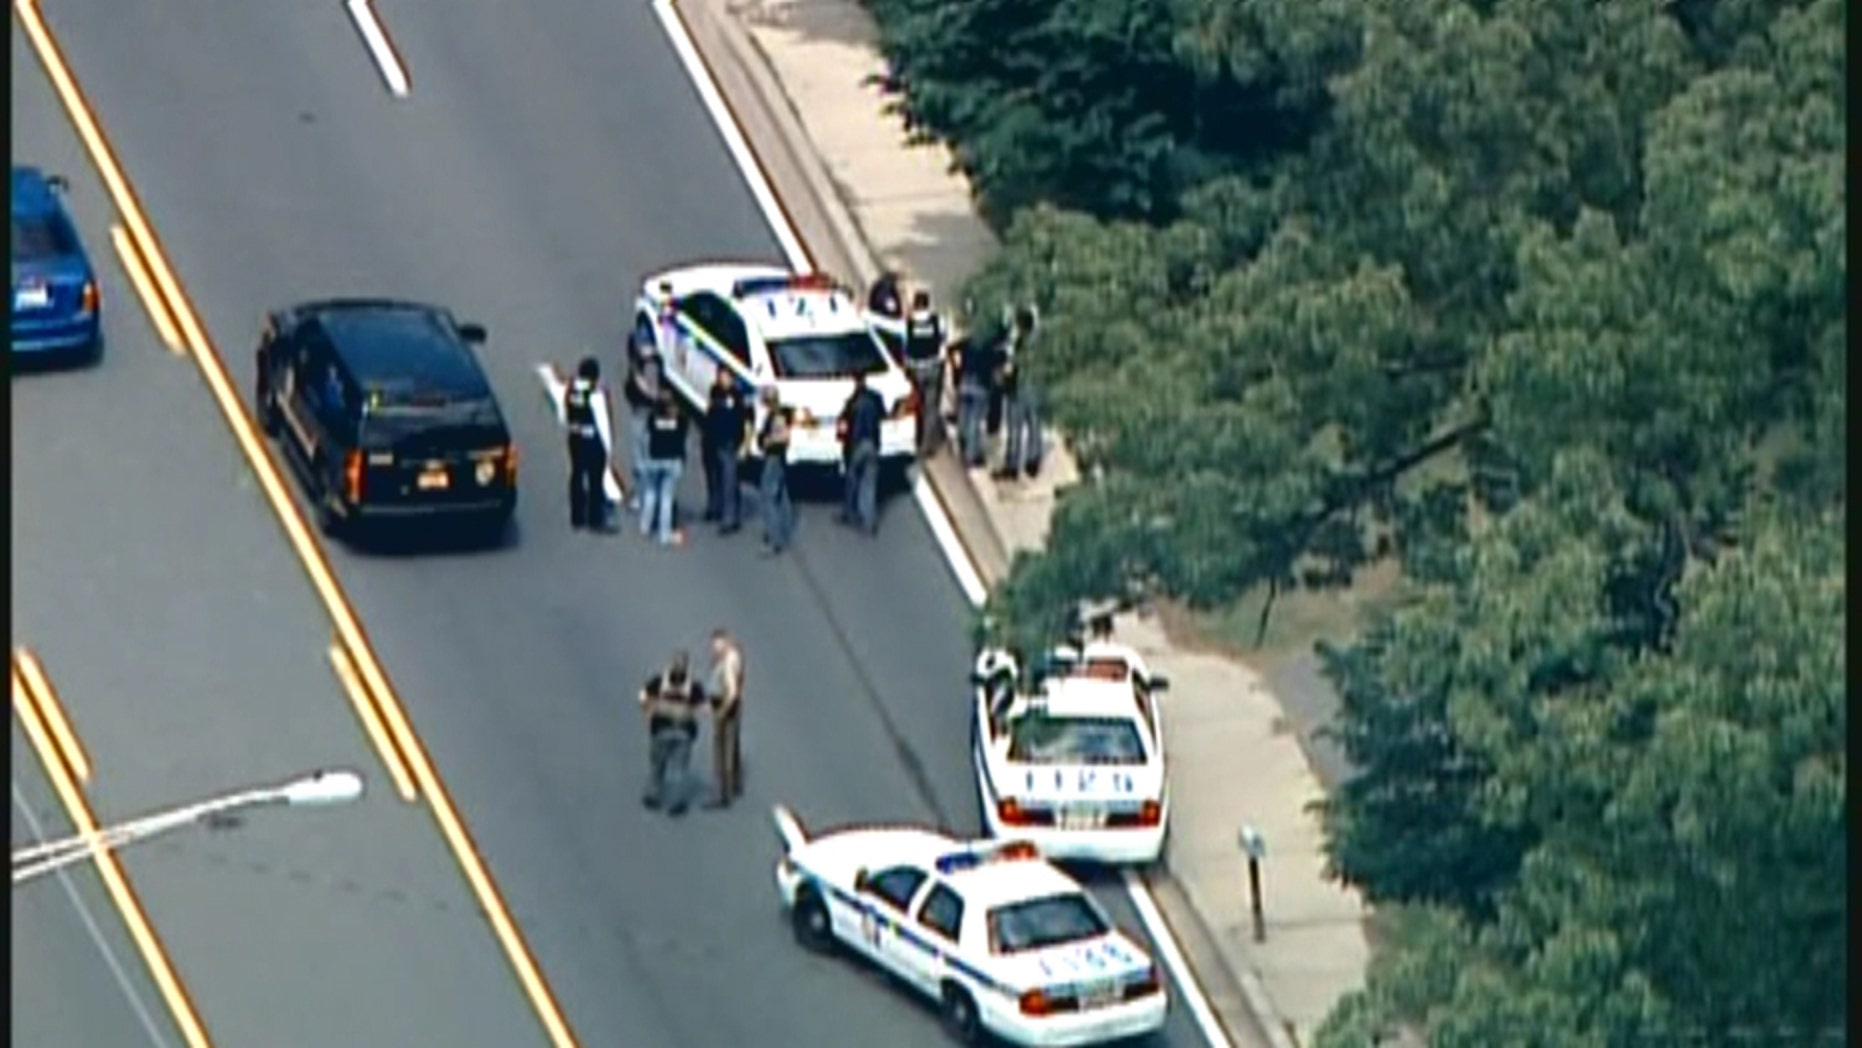 A Baltimore County, Maryland police officer was killed Monday following an altercation with suspects still on the loose.